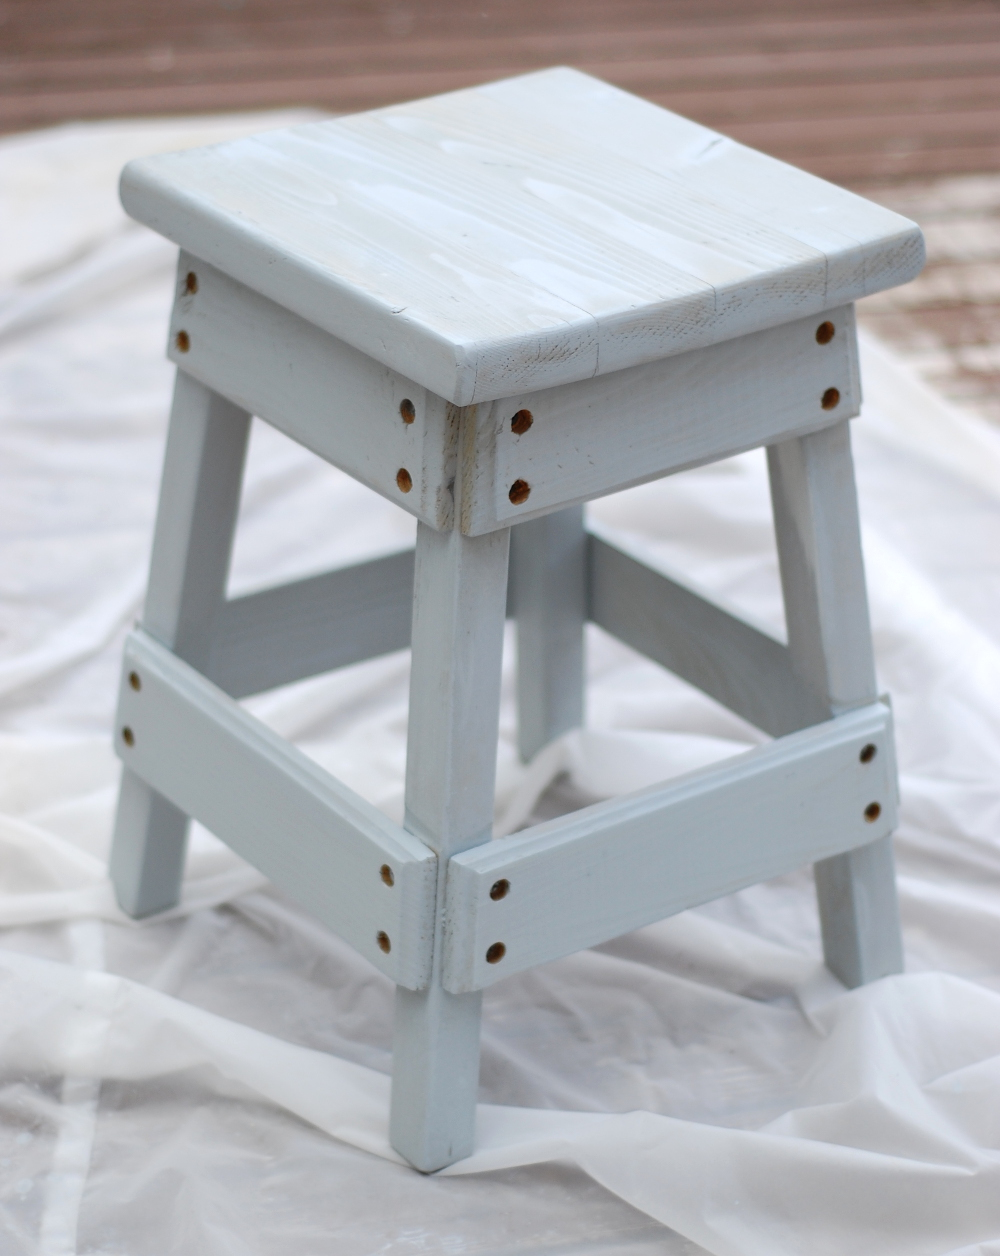 Nautical Stool Refinish - Turn a bland wood stool into a fun nautical themed piece, perfect for a bathroom or your oceanic-themed room!